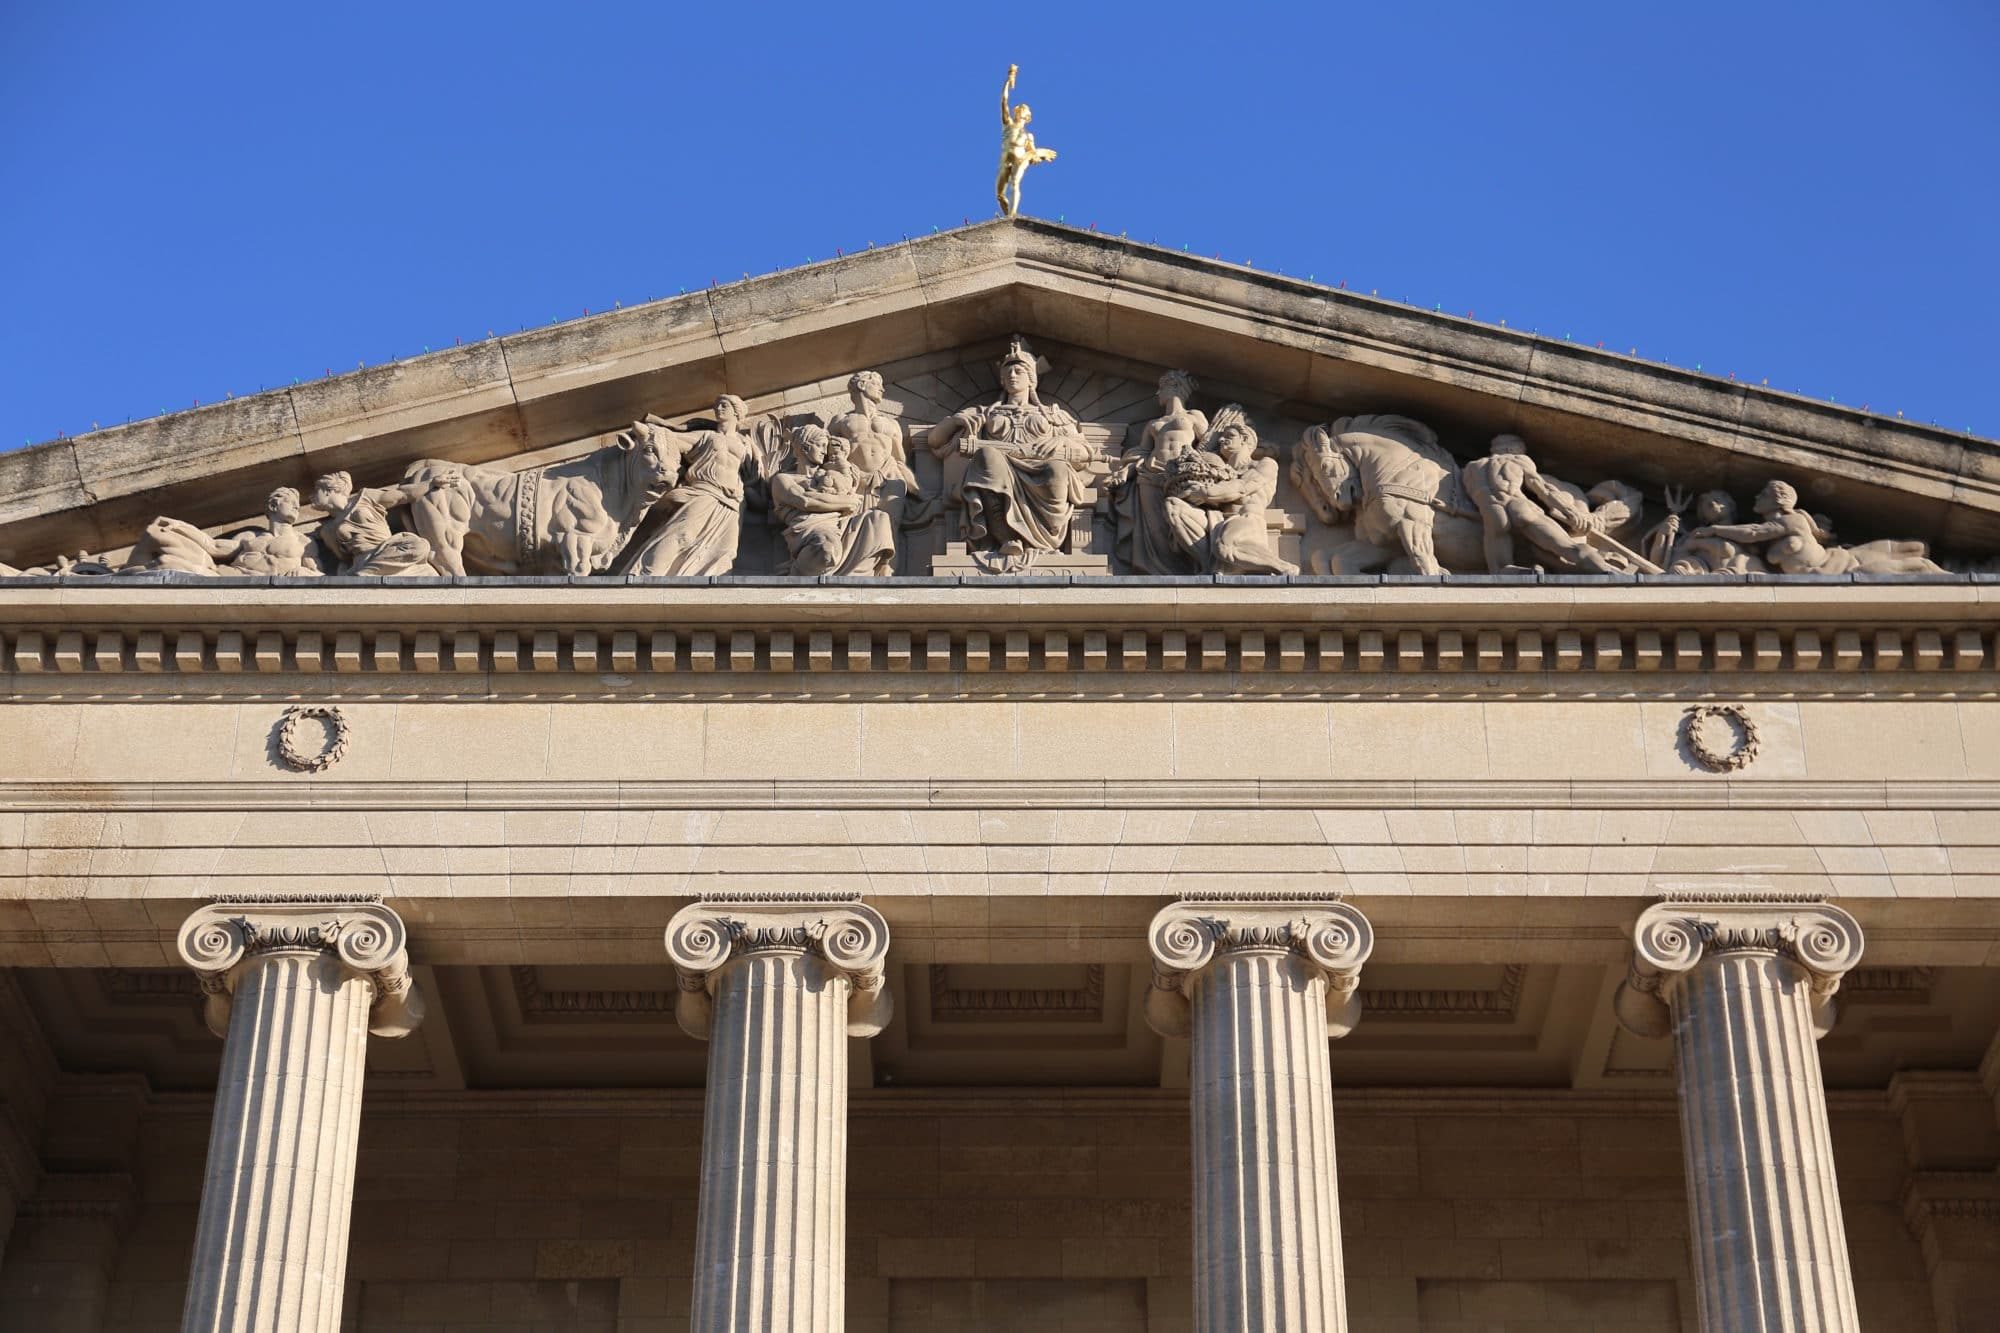 Canadian Road Trip Must-Do: Hermetic Code Tour of the Manitoba Legislative Building